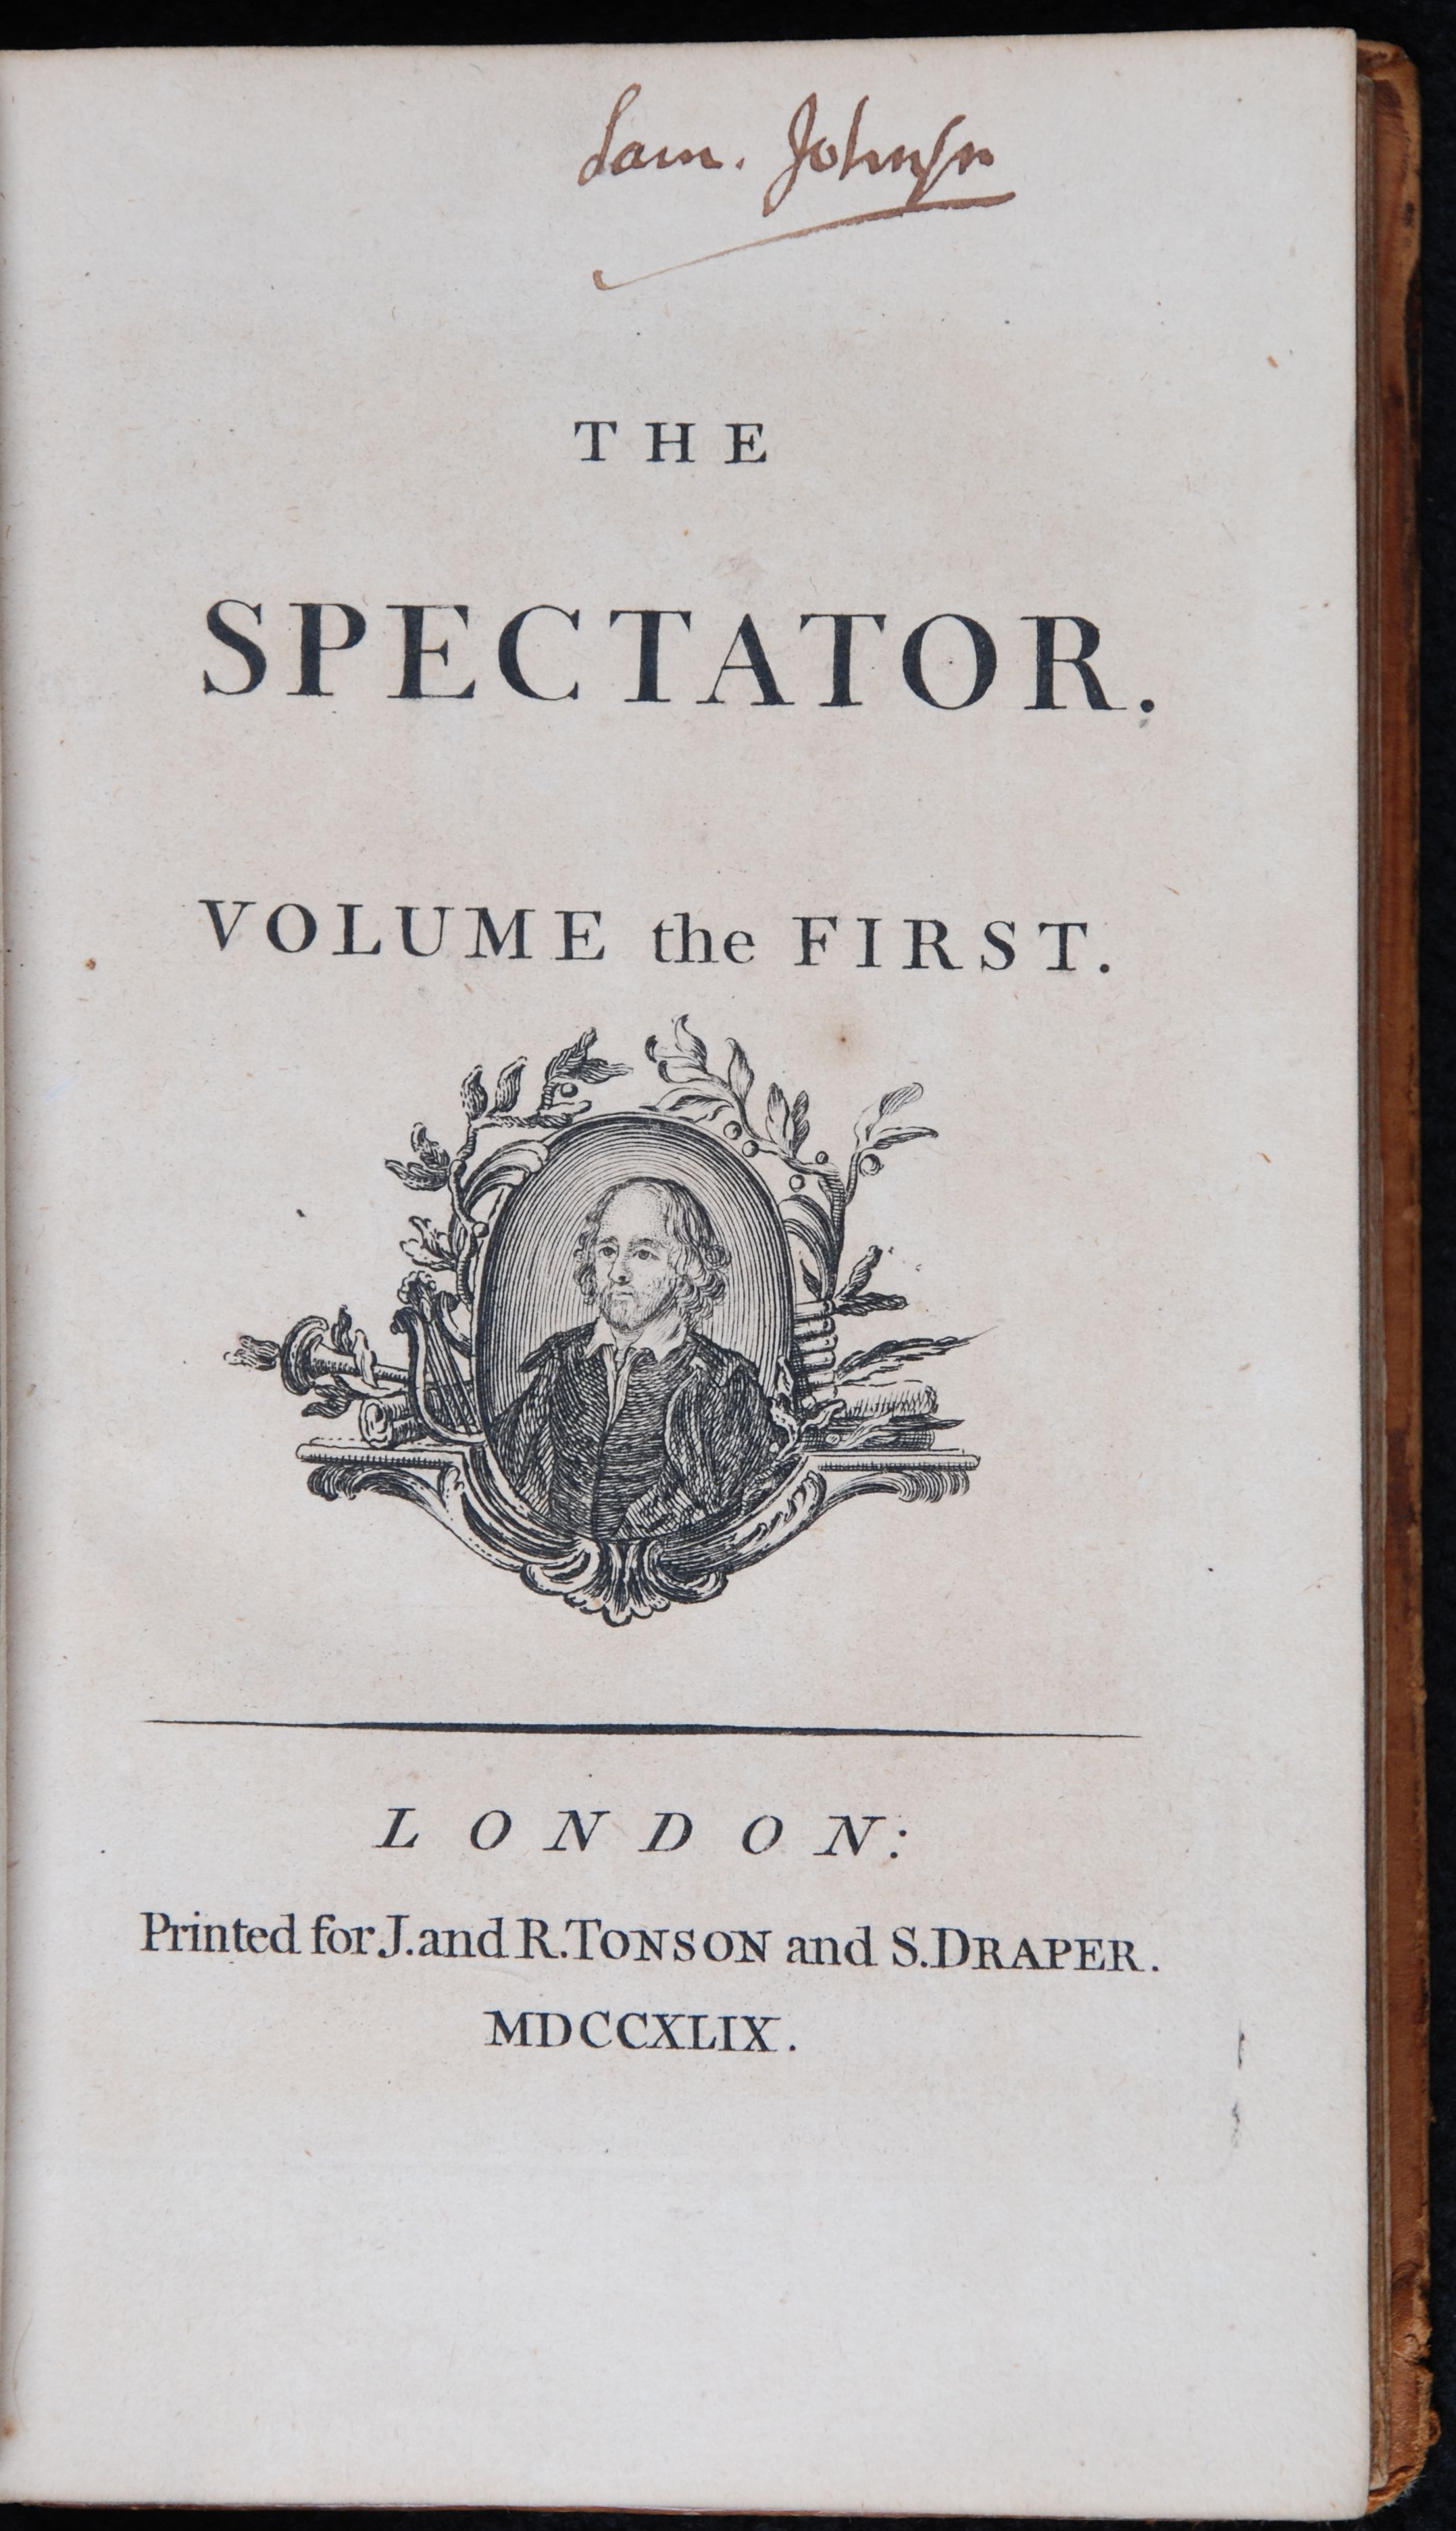 Joseph Addison and Richard Steele (editors). The spectator. London: Printed for J. and R. Tonson and S. Draper, 1749. Eight volumes; Vol. 1 displayed.